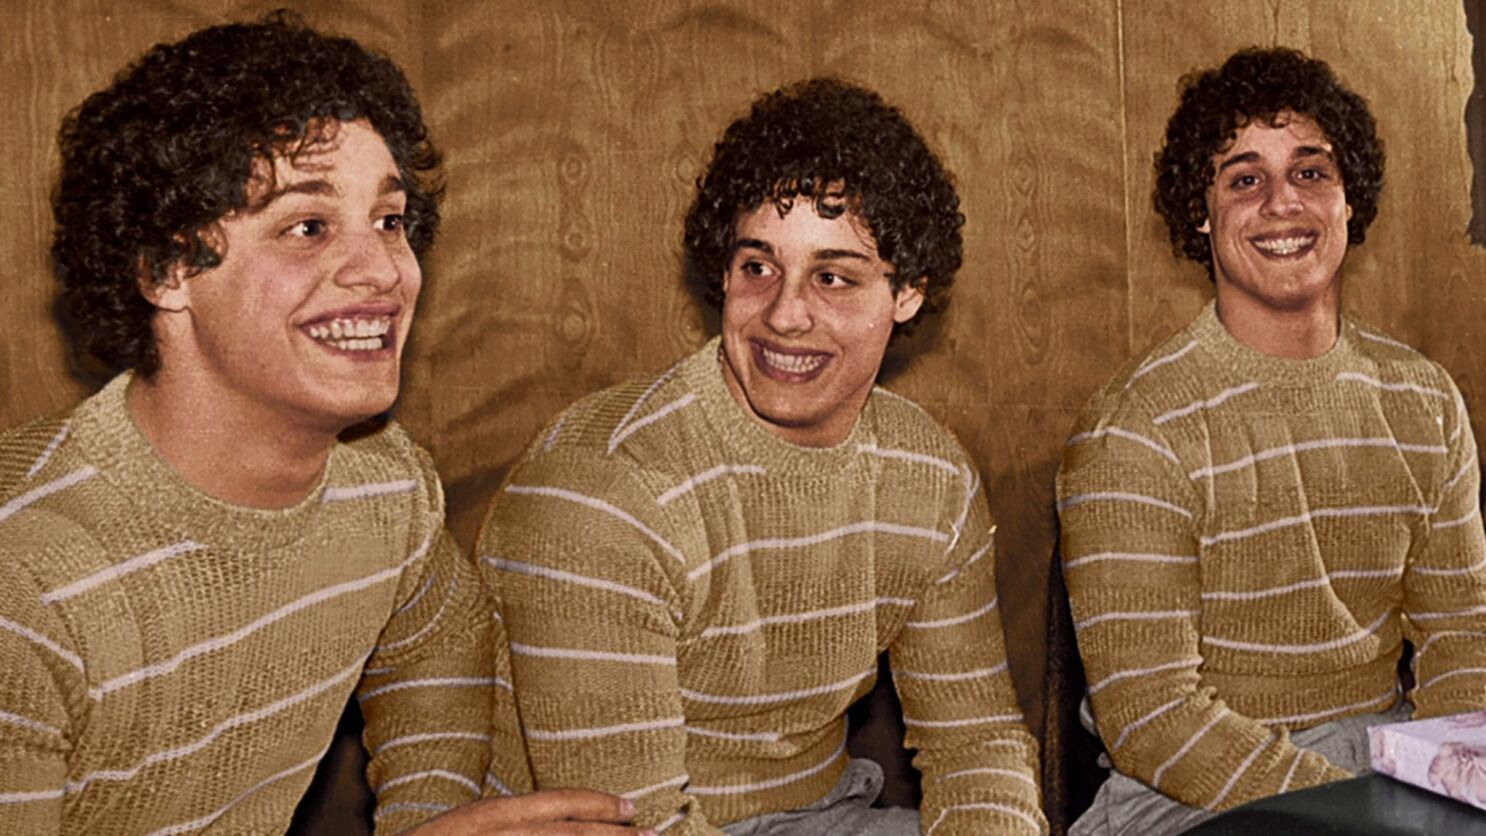 The surreal, sad story behind the acclaimed new doc 'Three Identical  Strangers' - Los Angeles Times